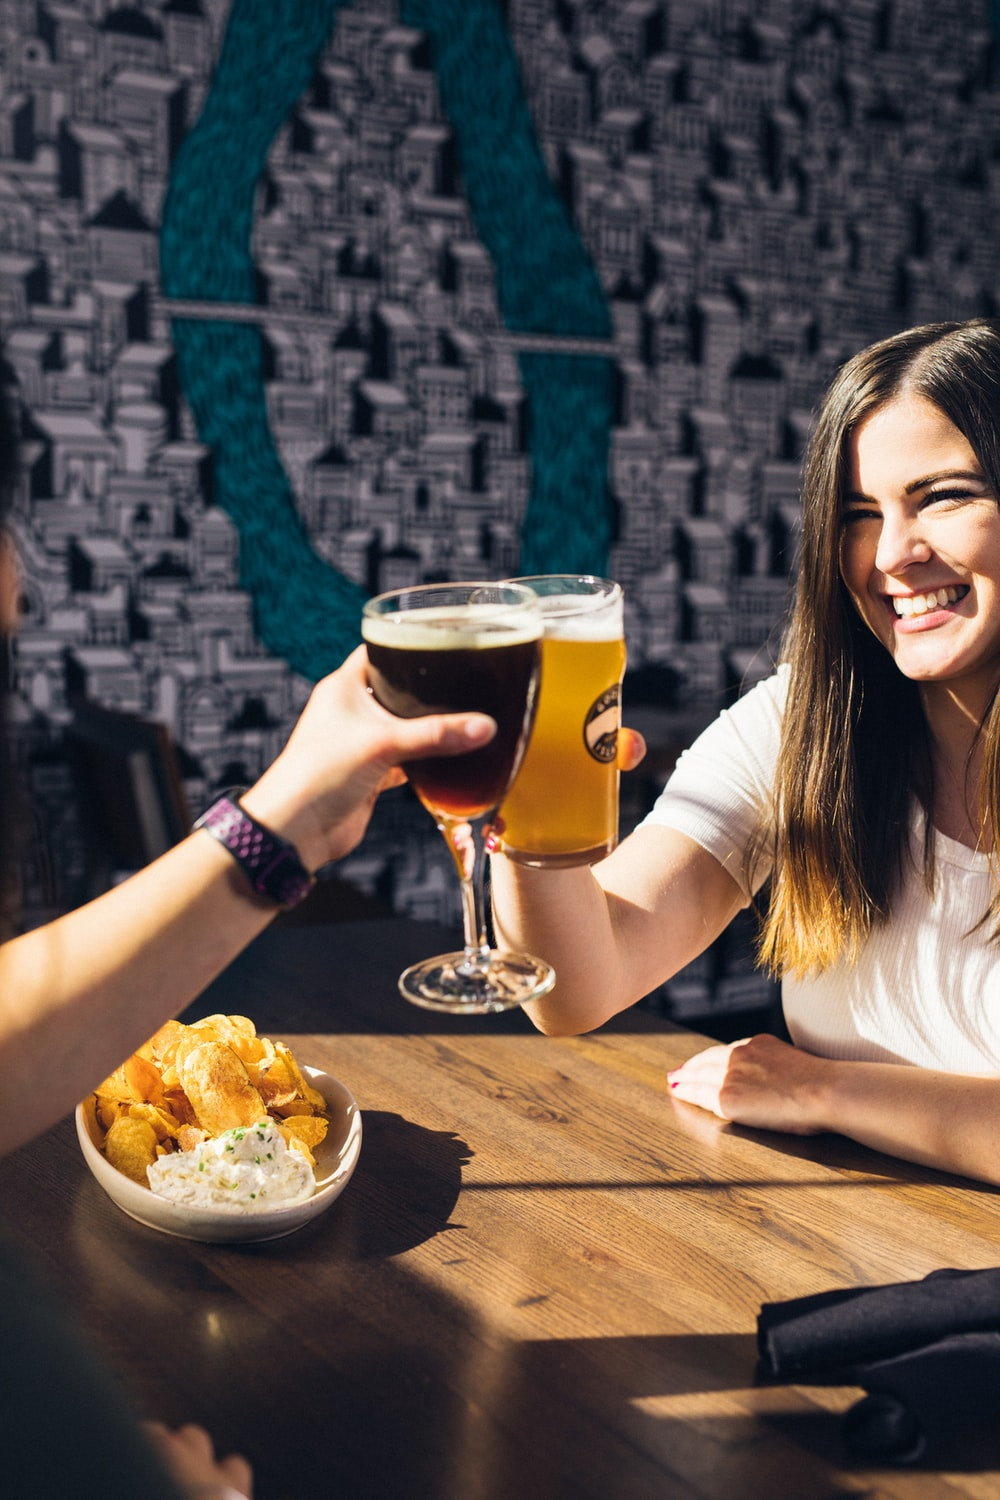 smiling woman sitting on chair while holding beer glass